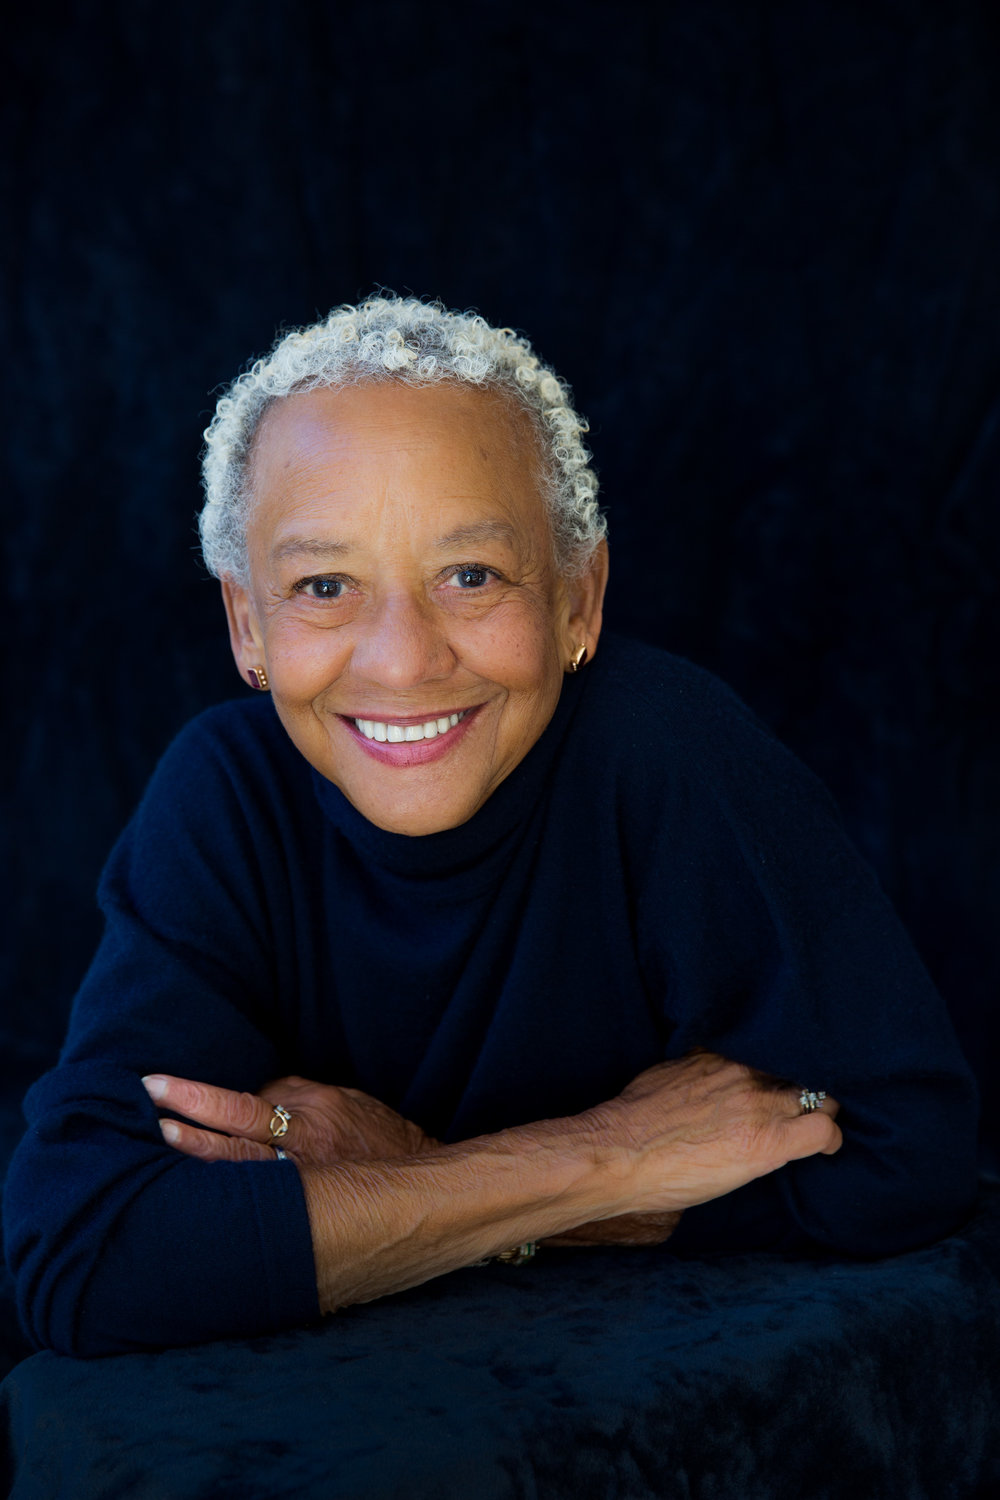 Nikki Giovanni - Poet, activist, and educator, Nikki Giovanni's fiery, humorous, and reflective voice has long inspired artists, educated readers, and informed our national consciousness. Her newest poetry collection, A Good Cry: What We Learn from Tears and Laughter, is deeply personal and has been described as her most intimate collection.Read more here, or in the October issue of Bella Magazine.